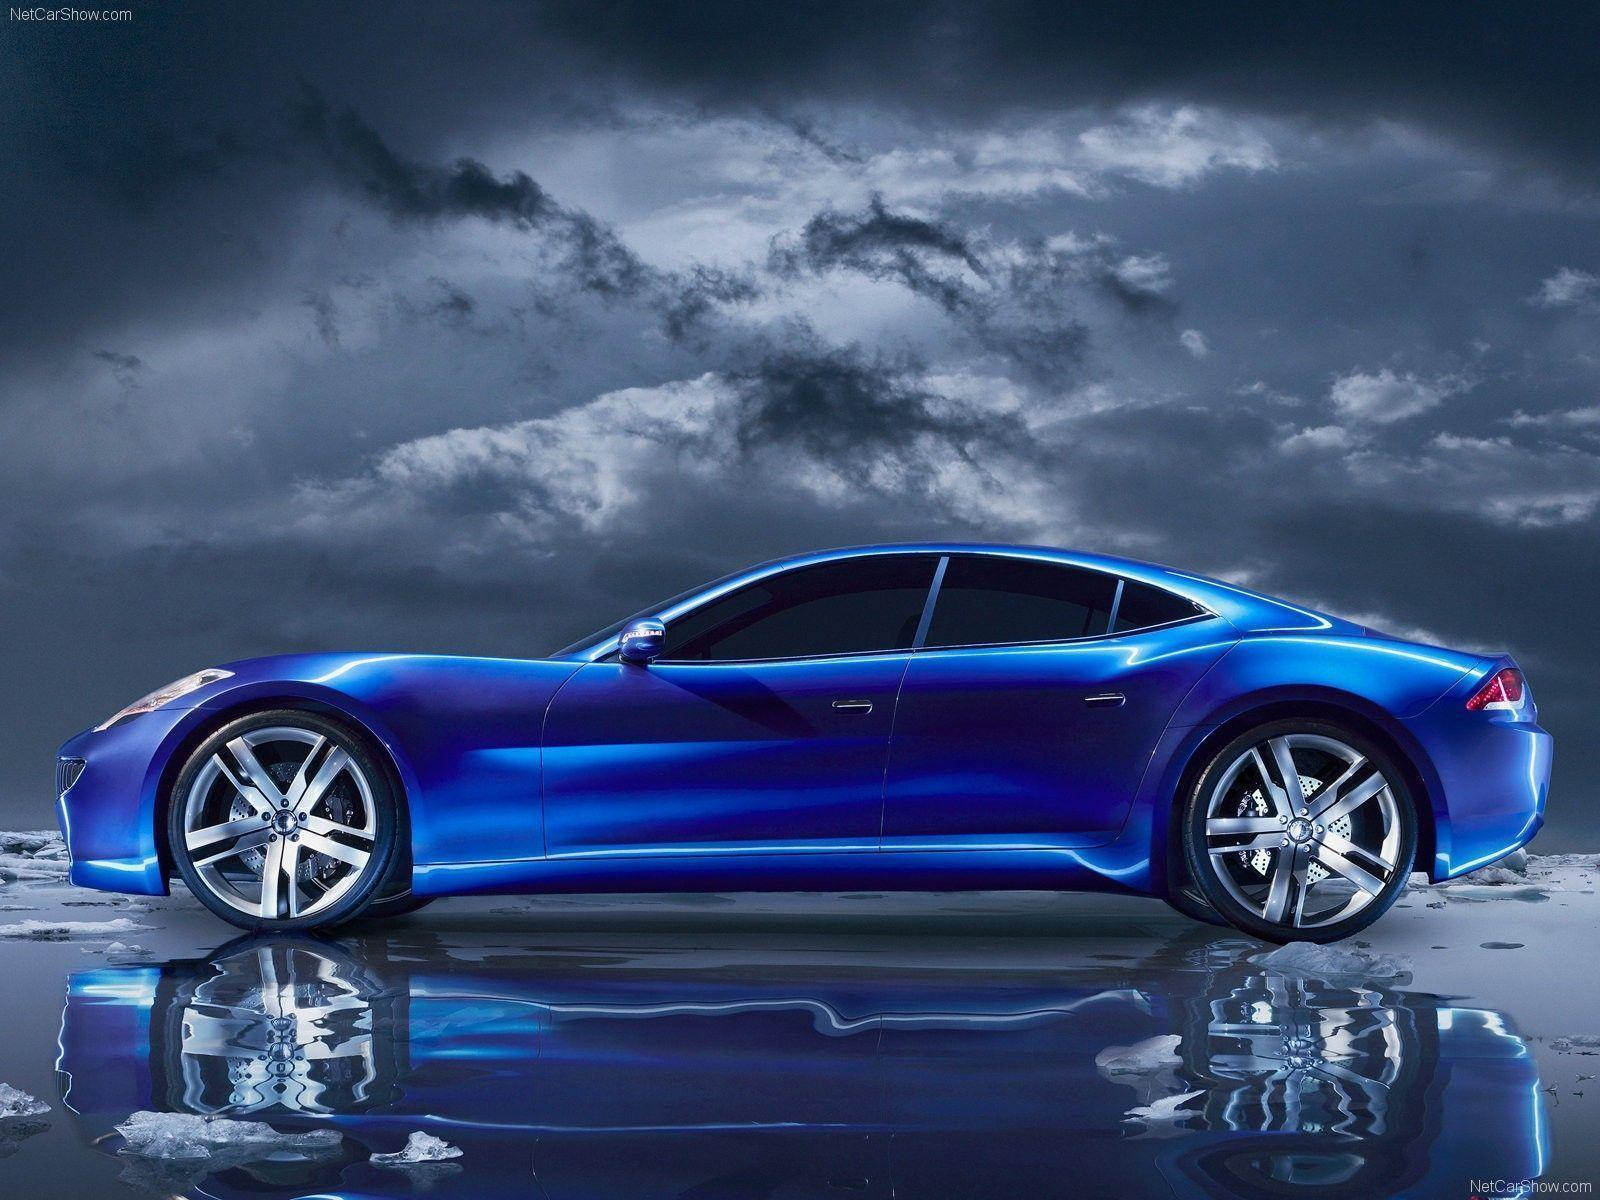 Cool Blue Car Wallpapers photos of Blue Car HD Wallpapers: by Free